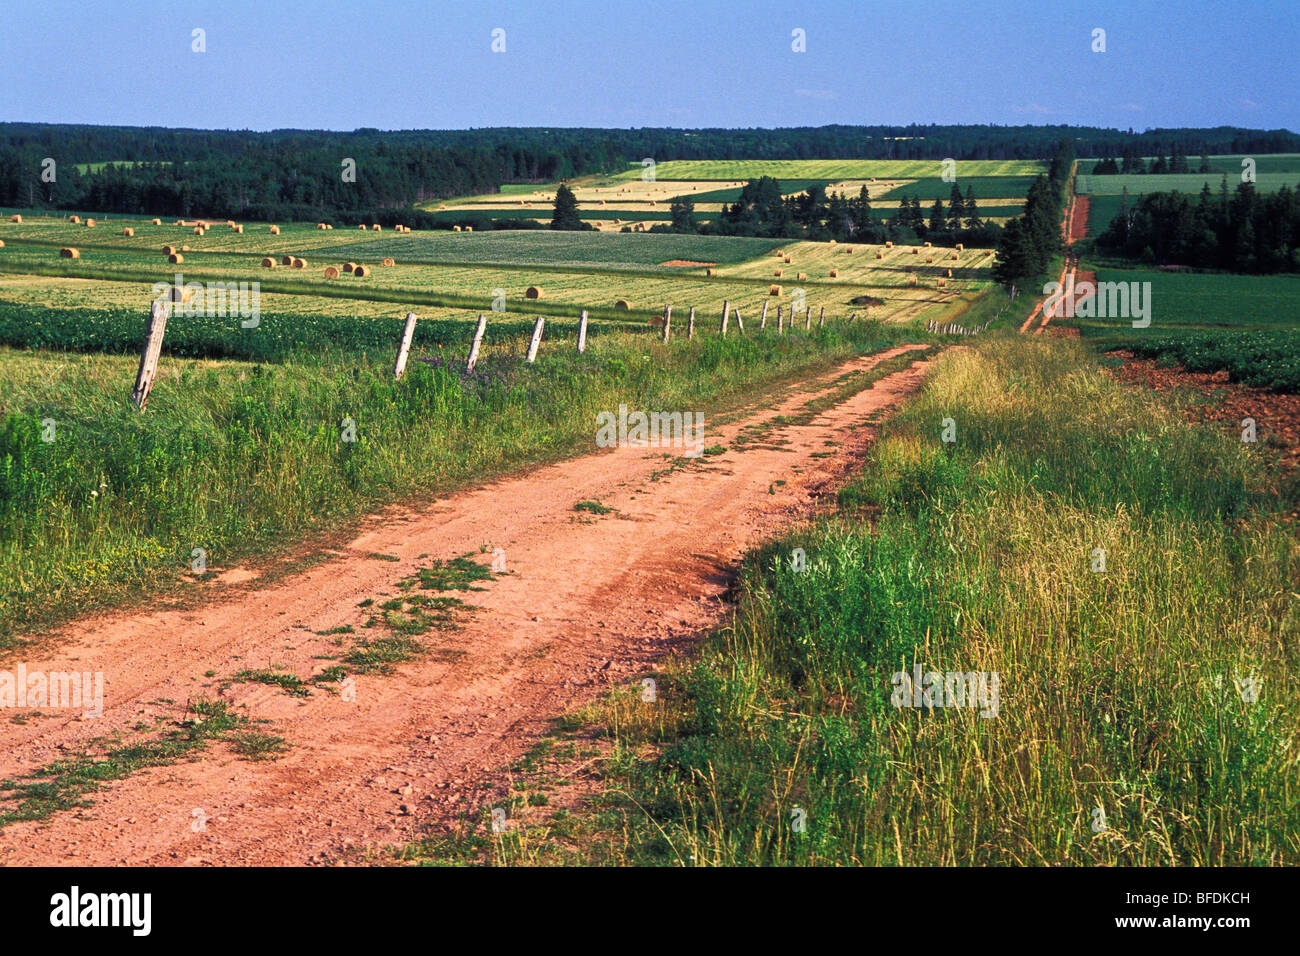 Rural, dirt road in the countryside, Kinkora, Prince Edward Island, Canada - Stock Image